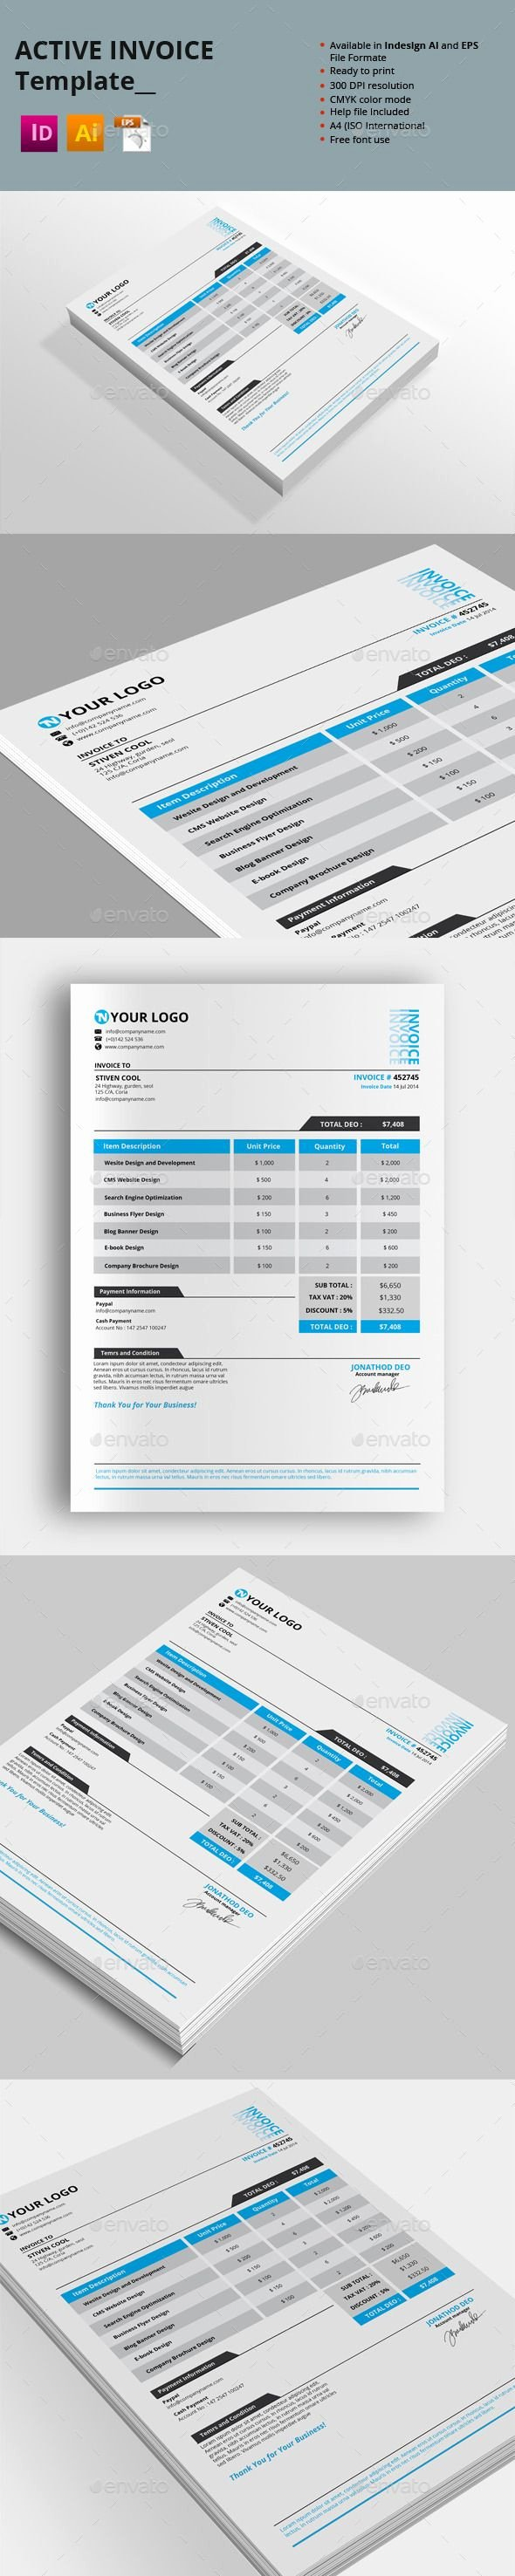 Indesign Invoice Template Free Awesome Active Invoice Templates — Vector Eps Grey Indesign